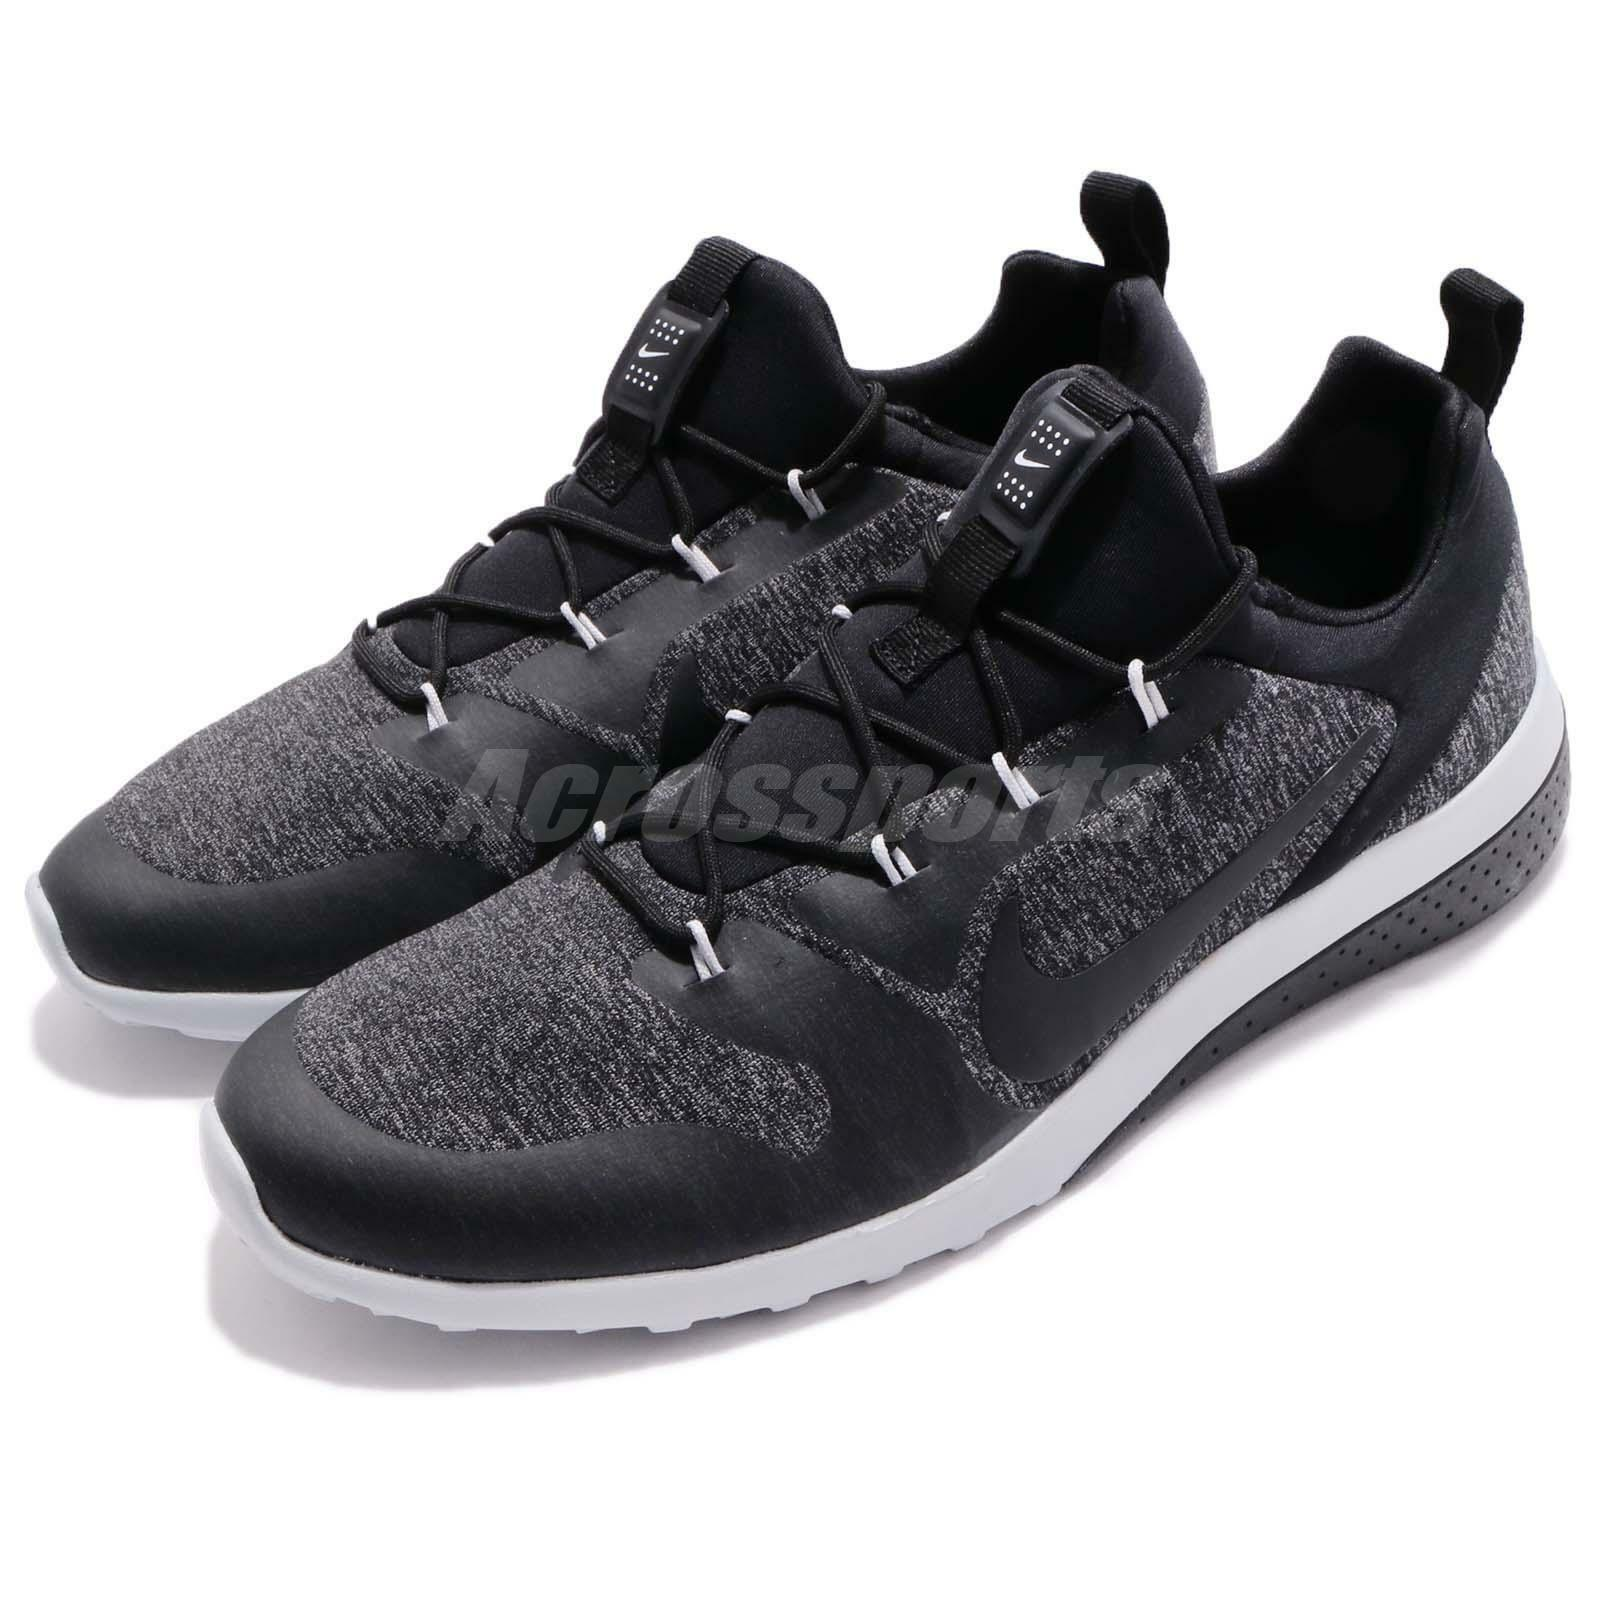 new products 4b512 4bd7b Nike CK CK CK Racer Black White Grey Running Athletic Shoes Sneakers  916780-007 0486a1